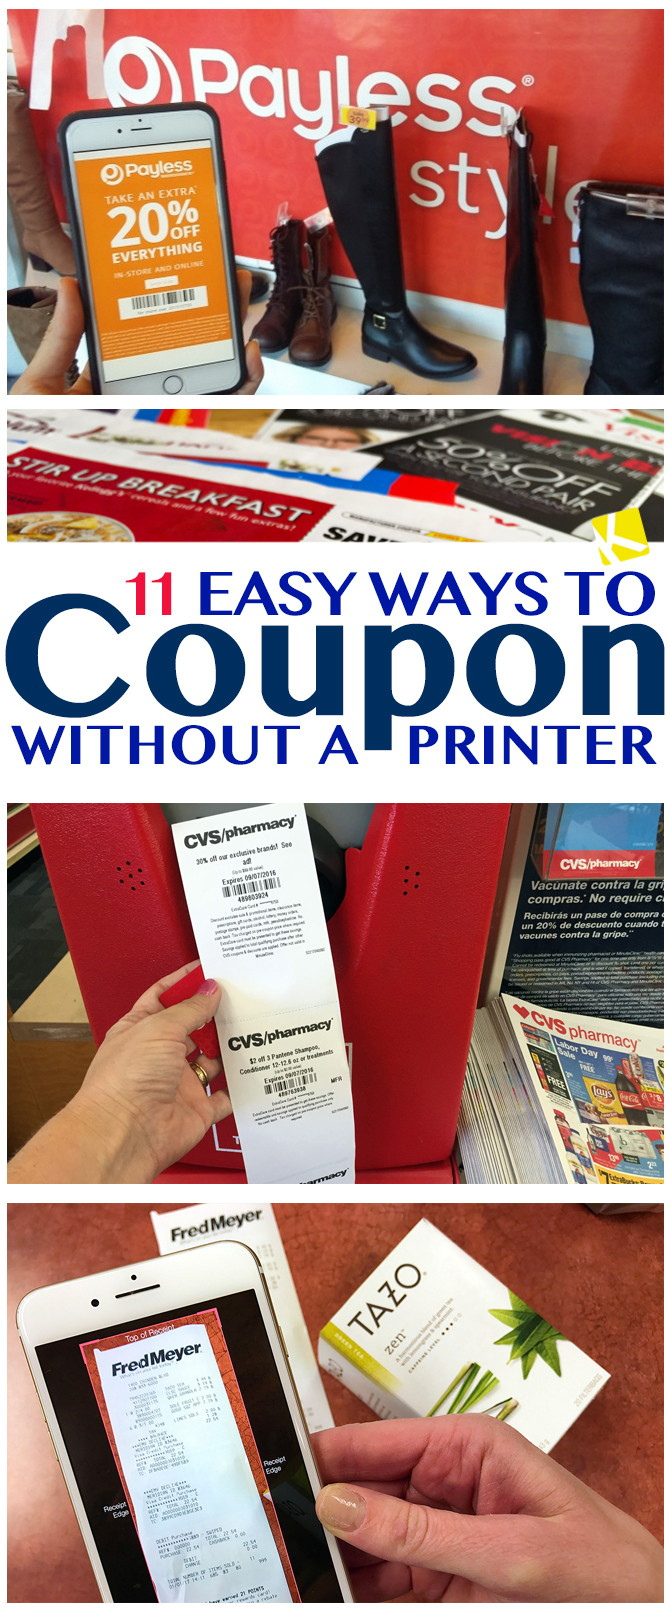 11 Easy Ways To Coupon Without A Printer - The Krazy Coupon Lady - Free Printable Coupons Without Coupon Printer